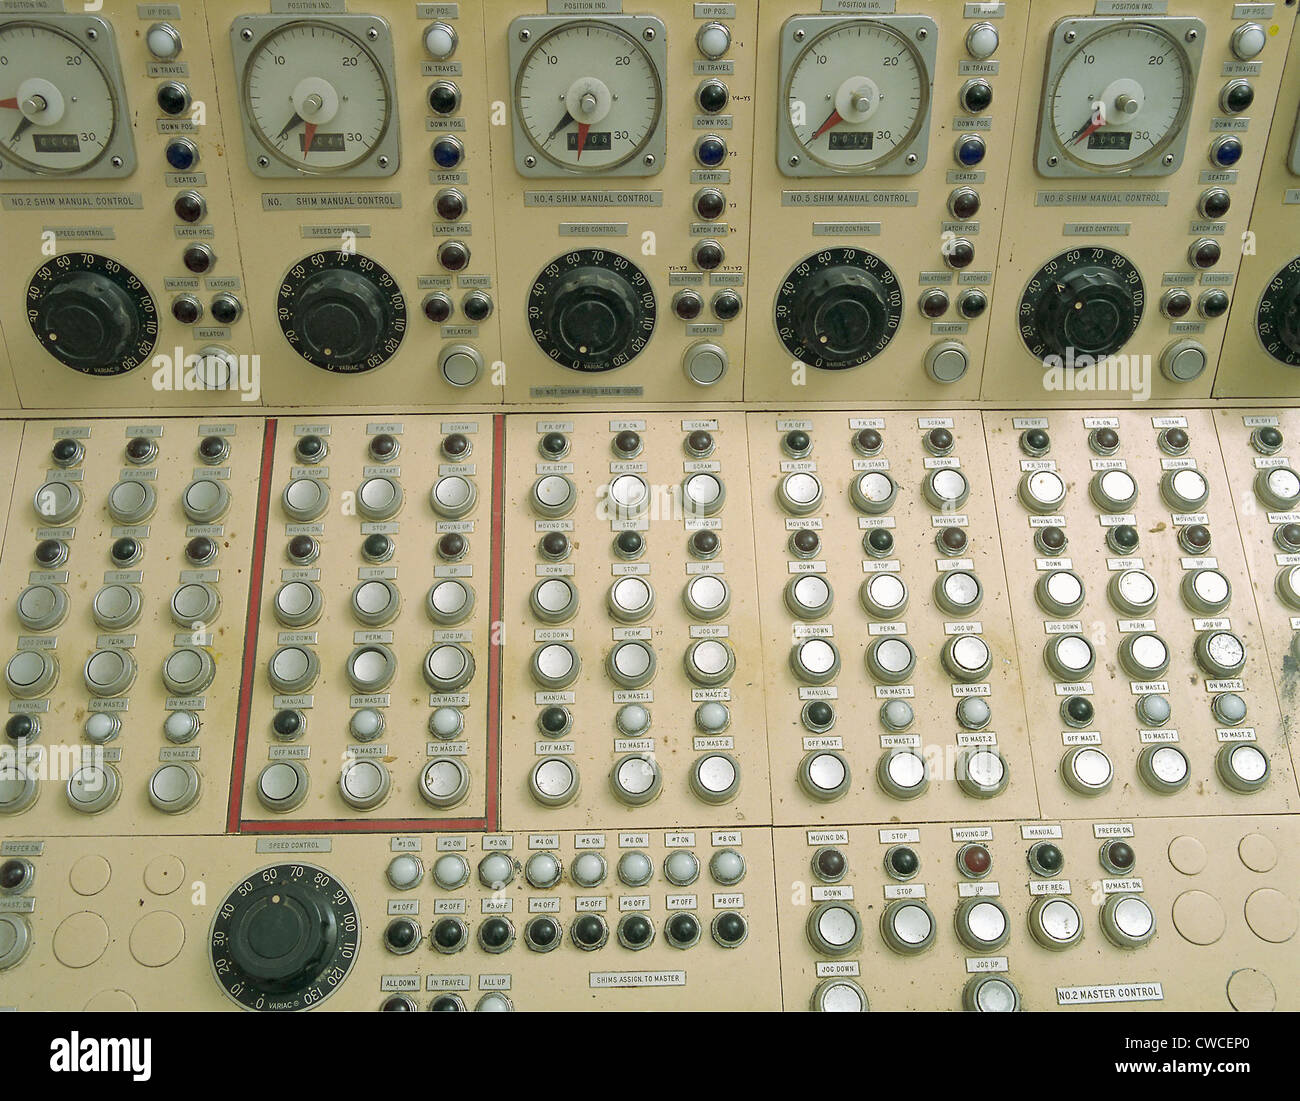 Nuclear reactor control panel for the manual operation of the control rods that regulate temperatures in the reactor - Stock Image